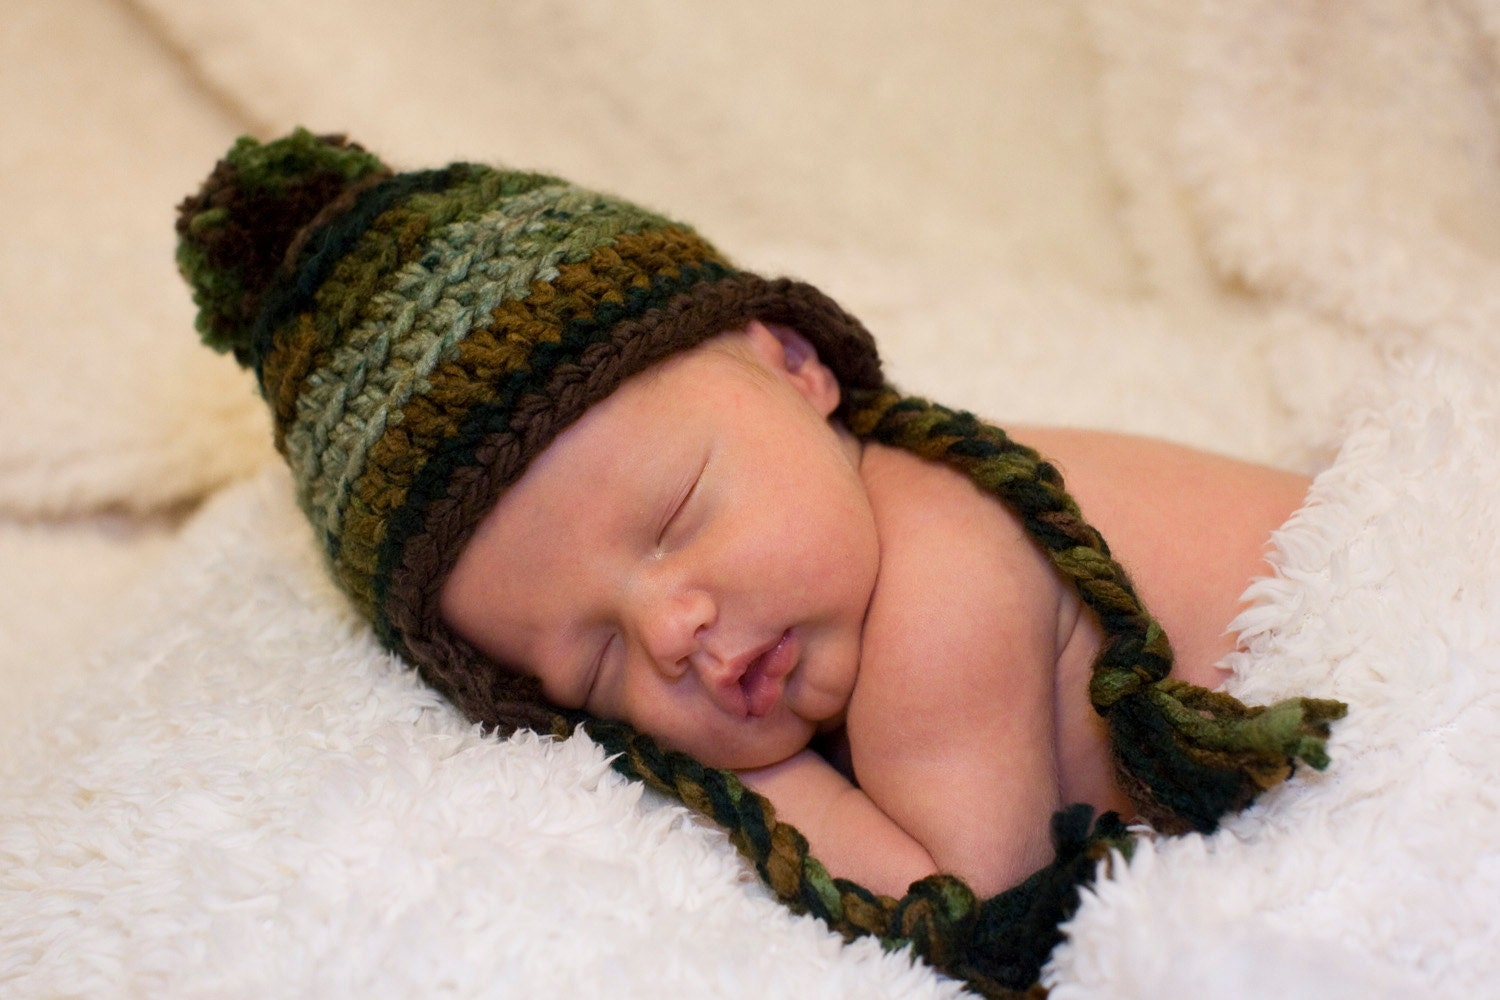 Newborn Baby Beanie > Newborn Baby Hat > Baby Beanie With Pom Pom > Pom Pom Baby Hat > Baby Winter Hat > Baby Shower Gift > Baby Hats Pom CanopySupplyCo. 5 out of 5 stars () $ Free shipping Favorite Add to See similar items + More like.